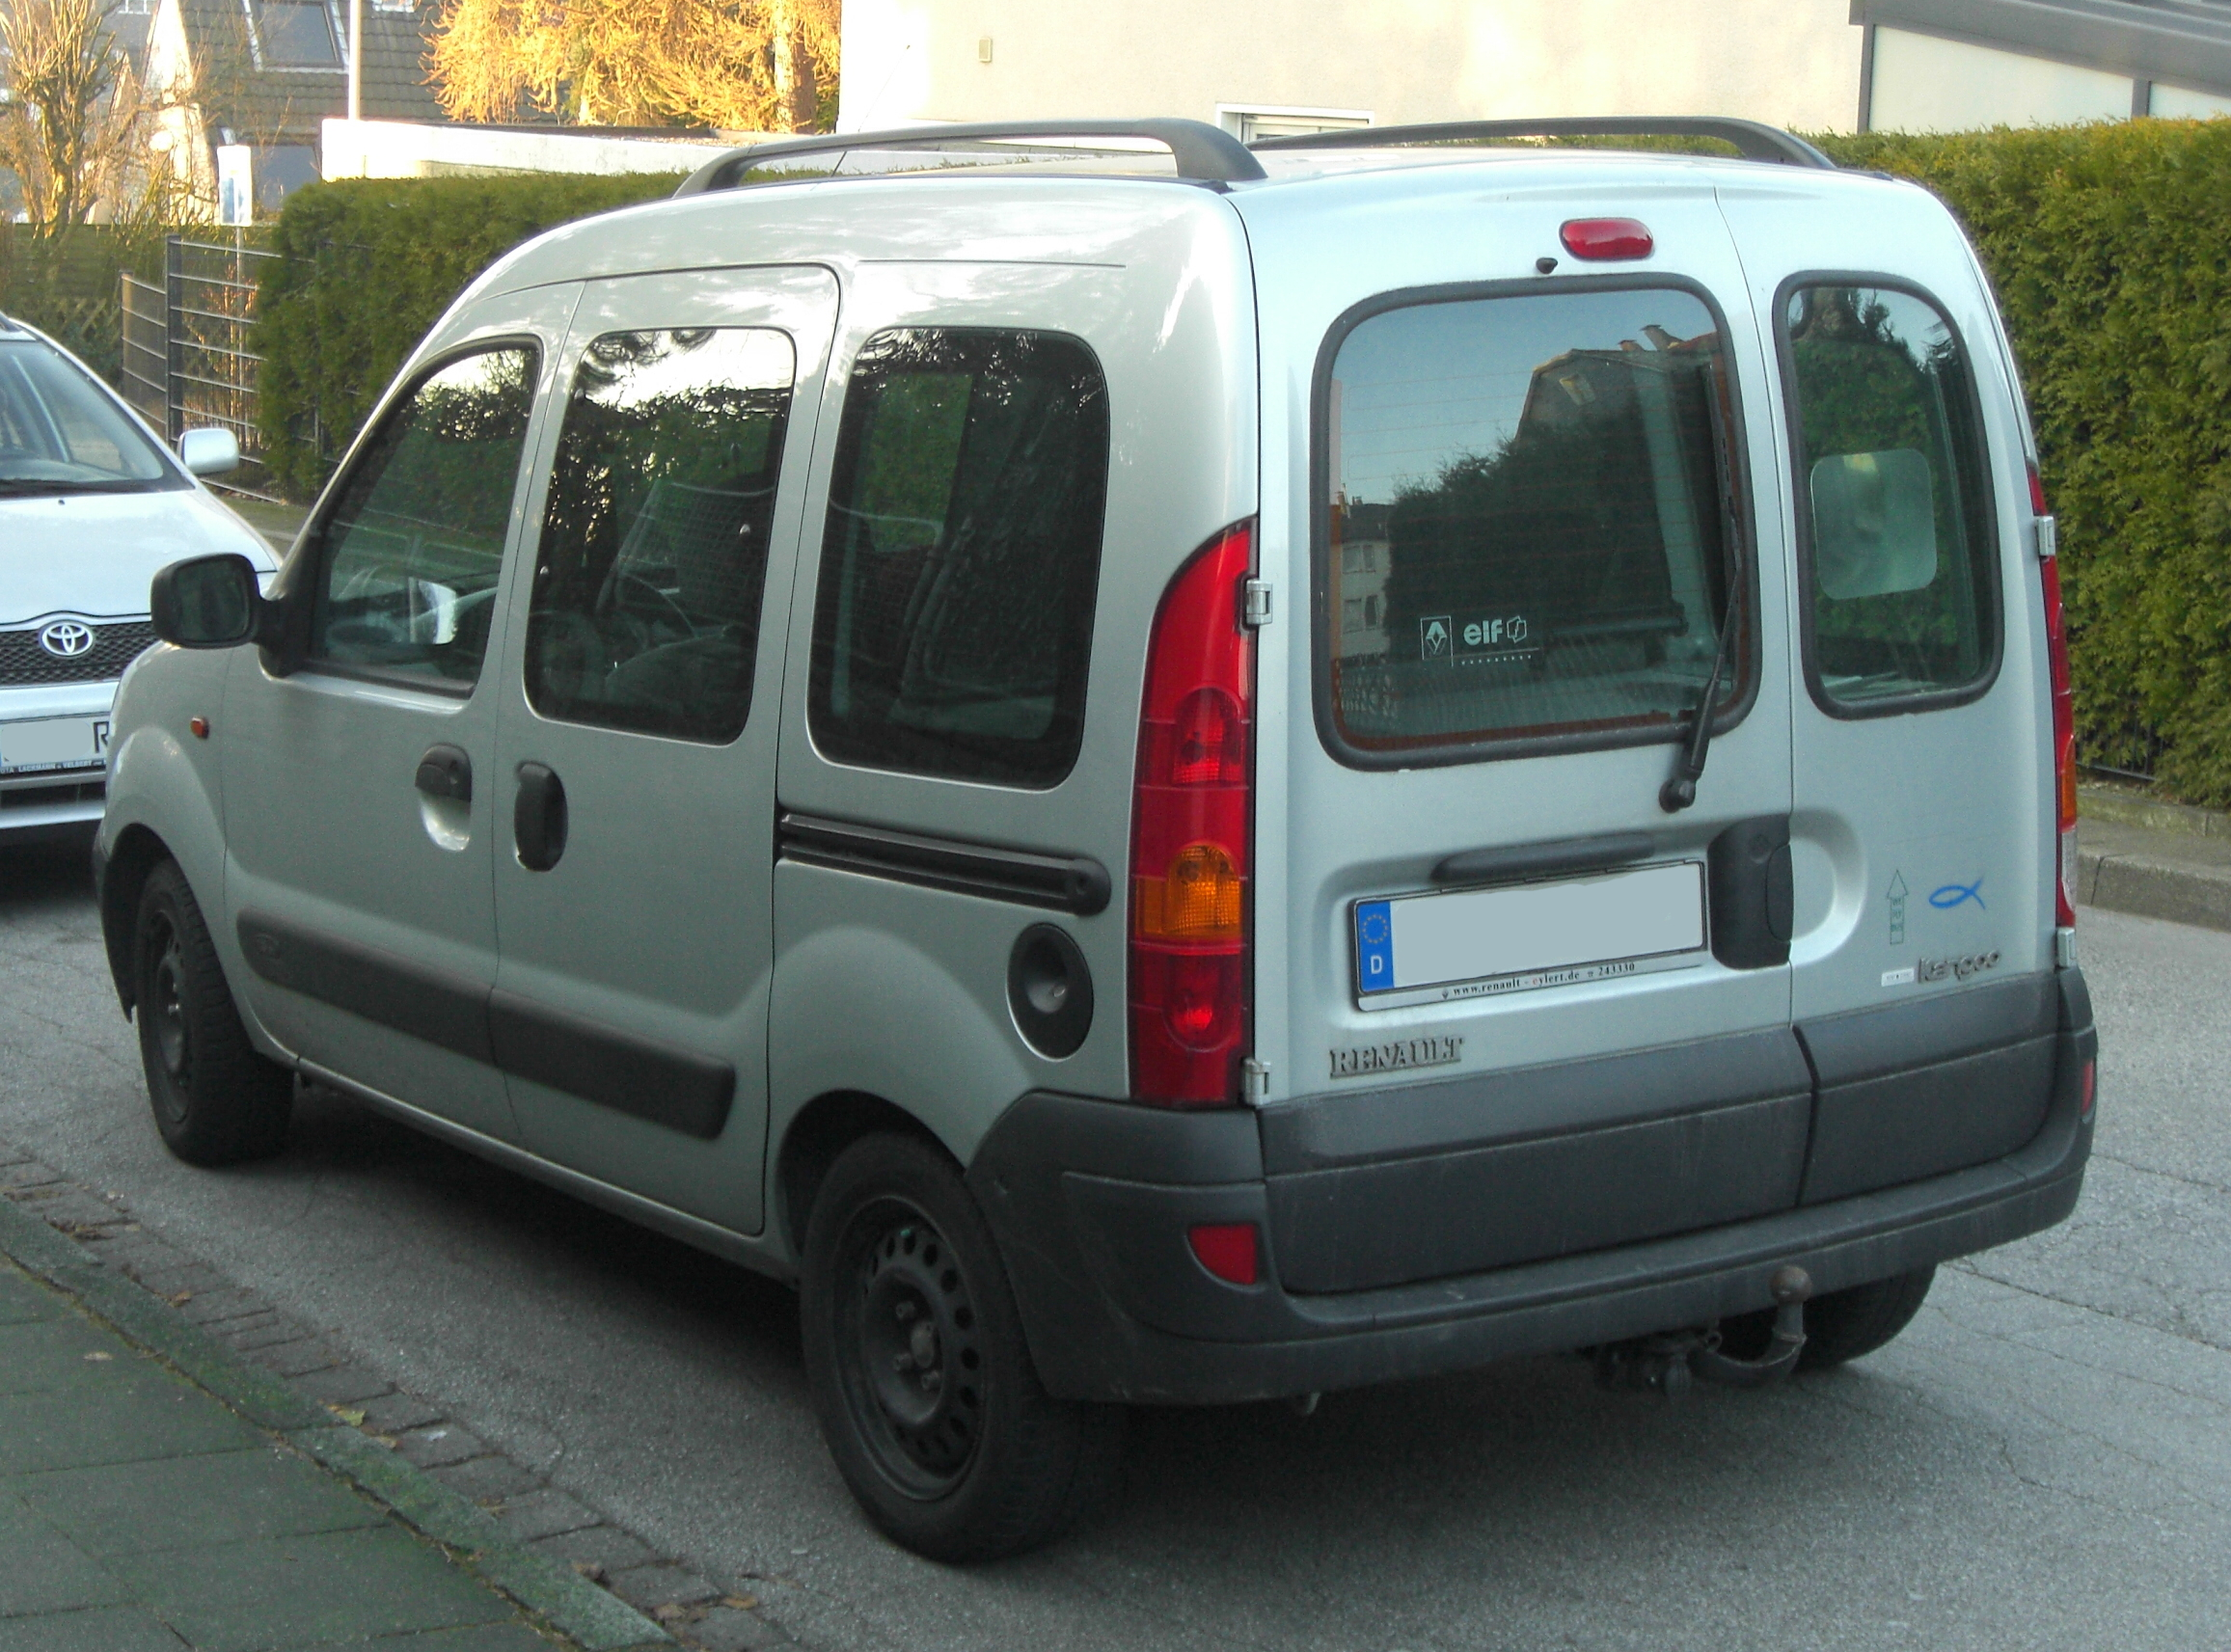 file renault kangoo phase iii rear jpg wikimedia commons. Black Bedroom Furniture Sets. Home Design Ideas